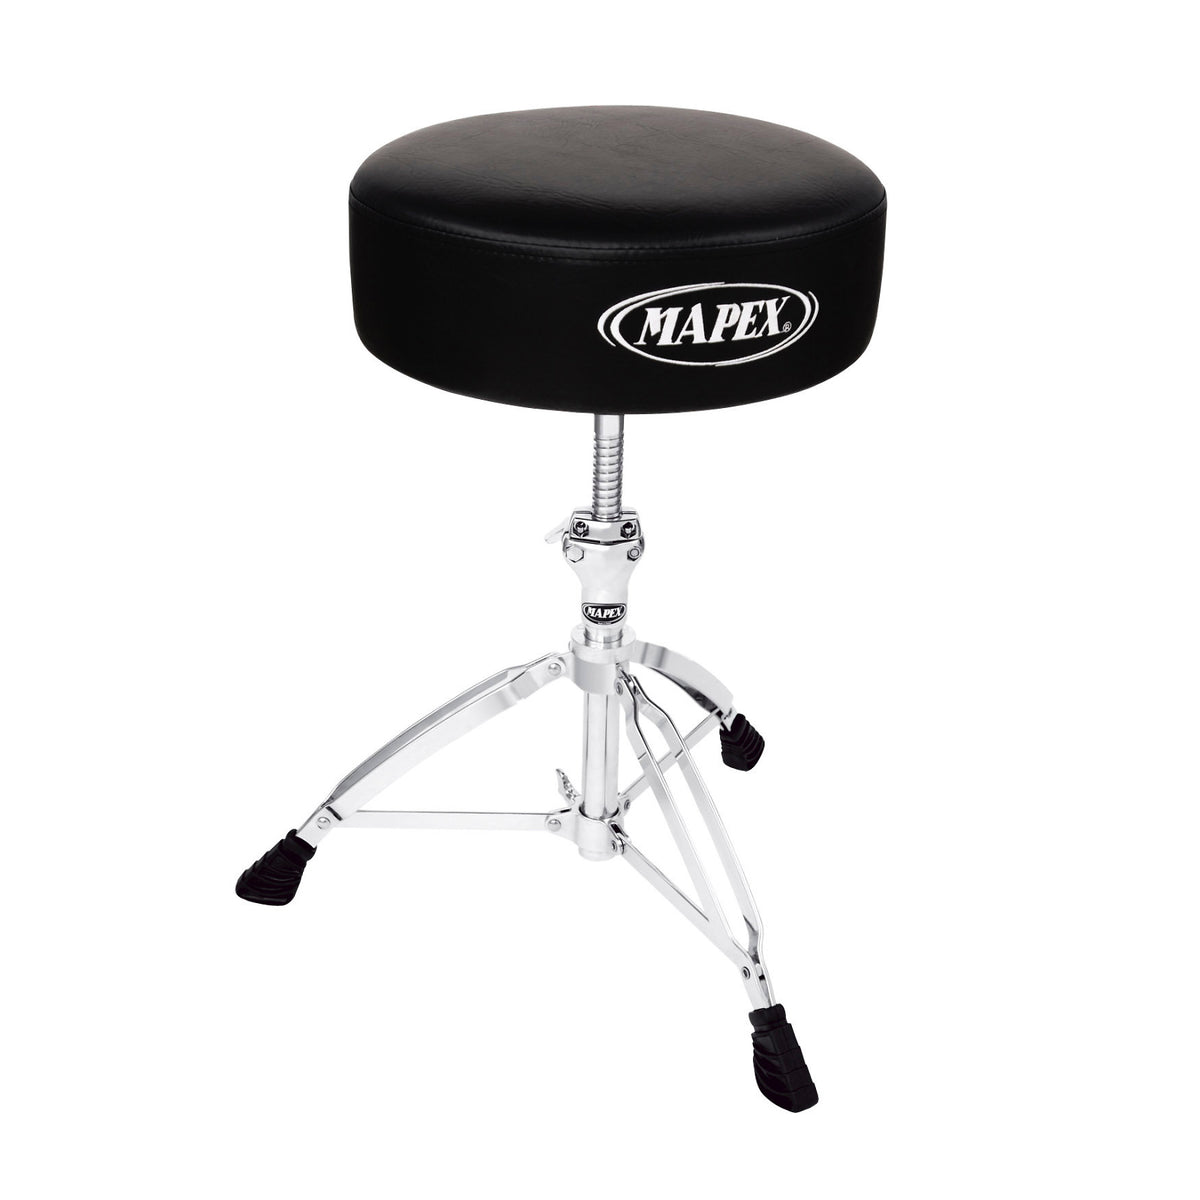 Mapex T750A Double-Braced Drum Throne